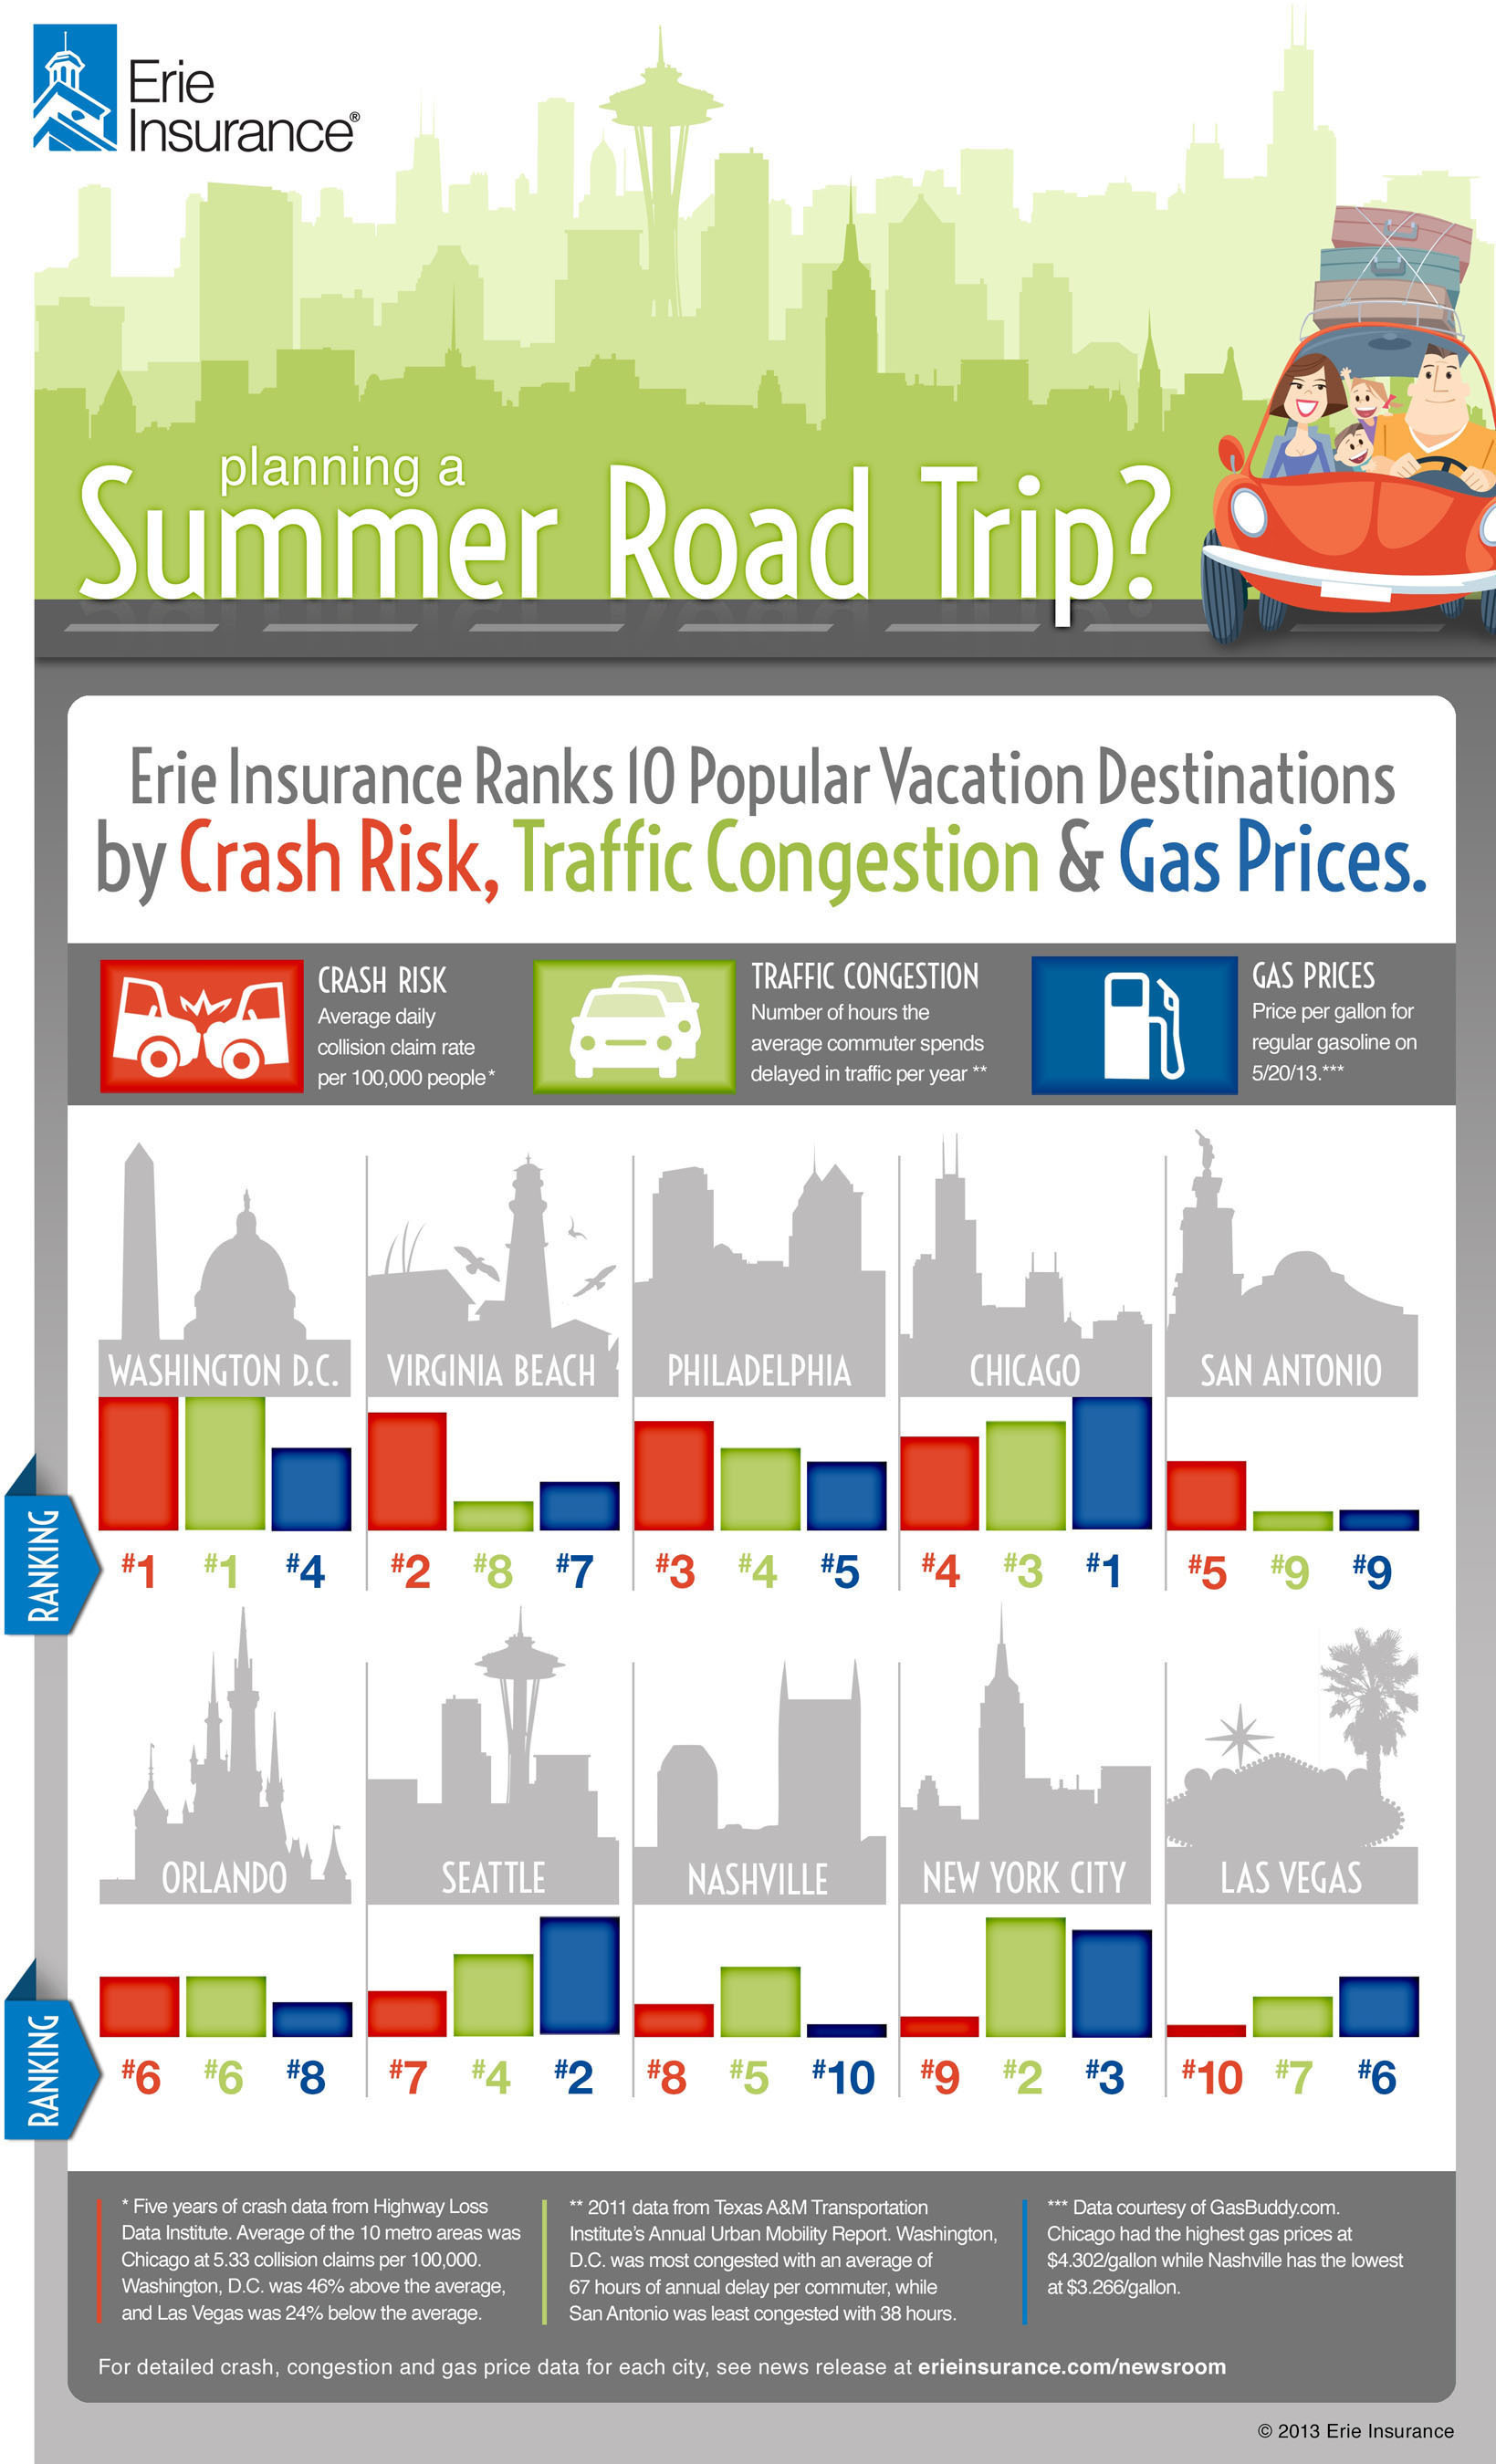 Planning a summer road trip? Erie Insurance ranks 10 popular vacation destinations by crash risk, traffic congestion and gas prices.  (PRNewsFoto/Erie Insurance)